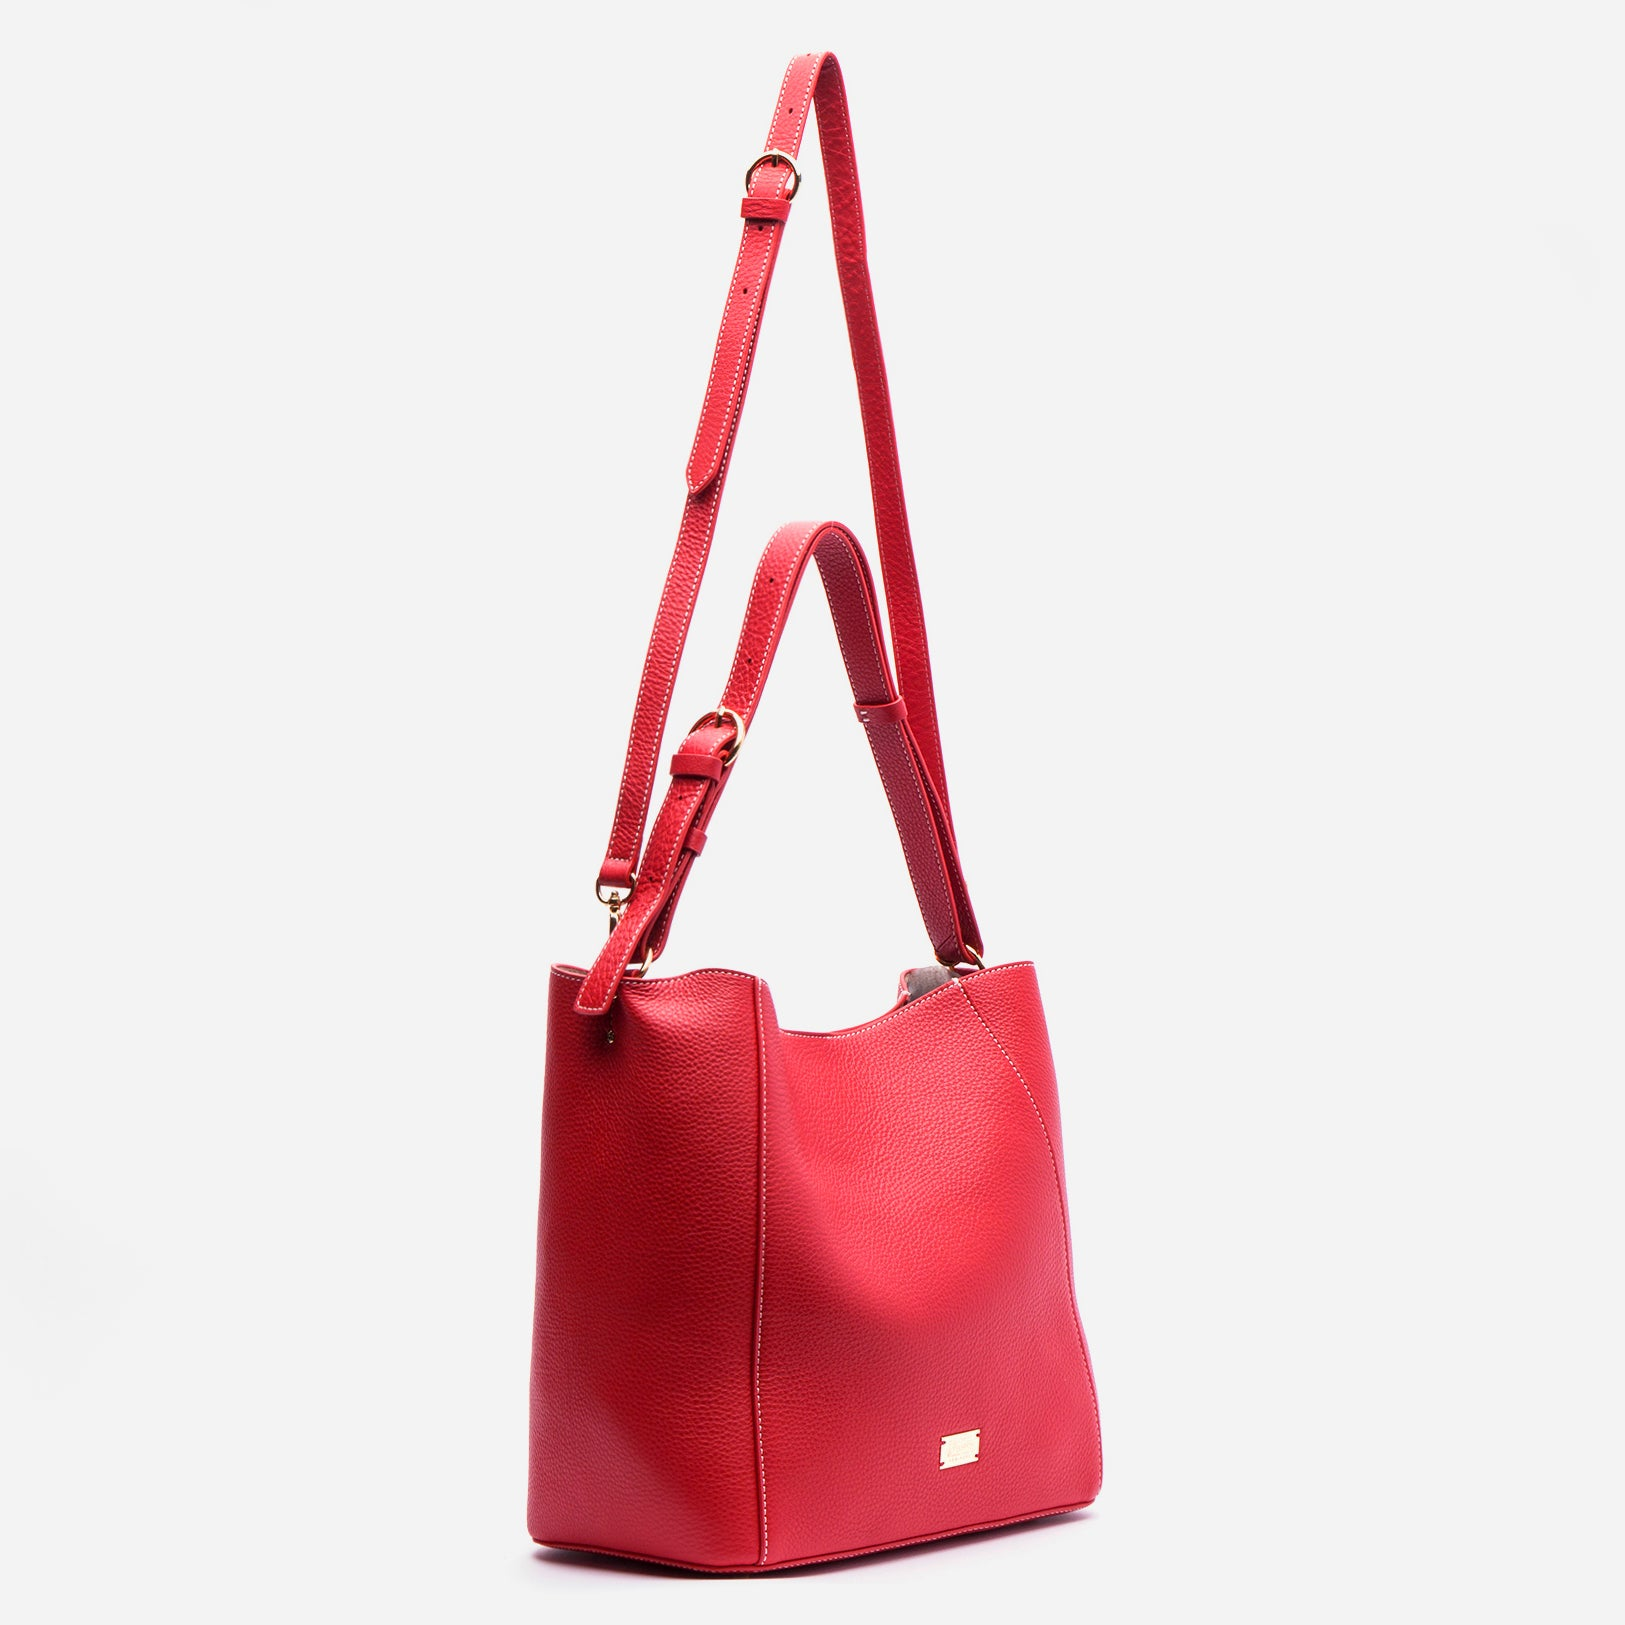 June Hobo Handbag Leather Red